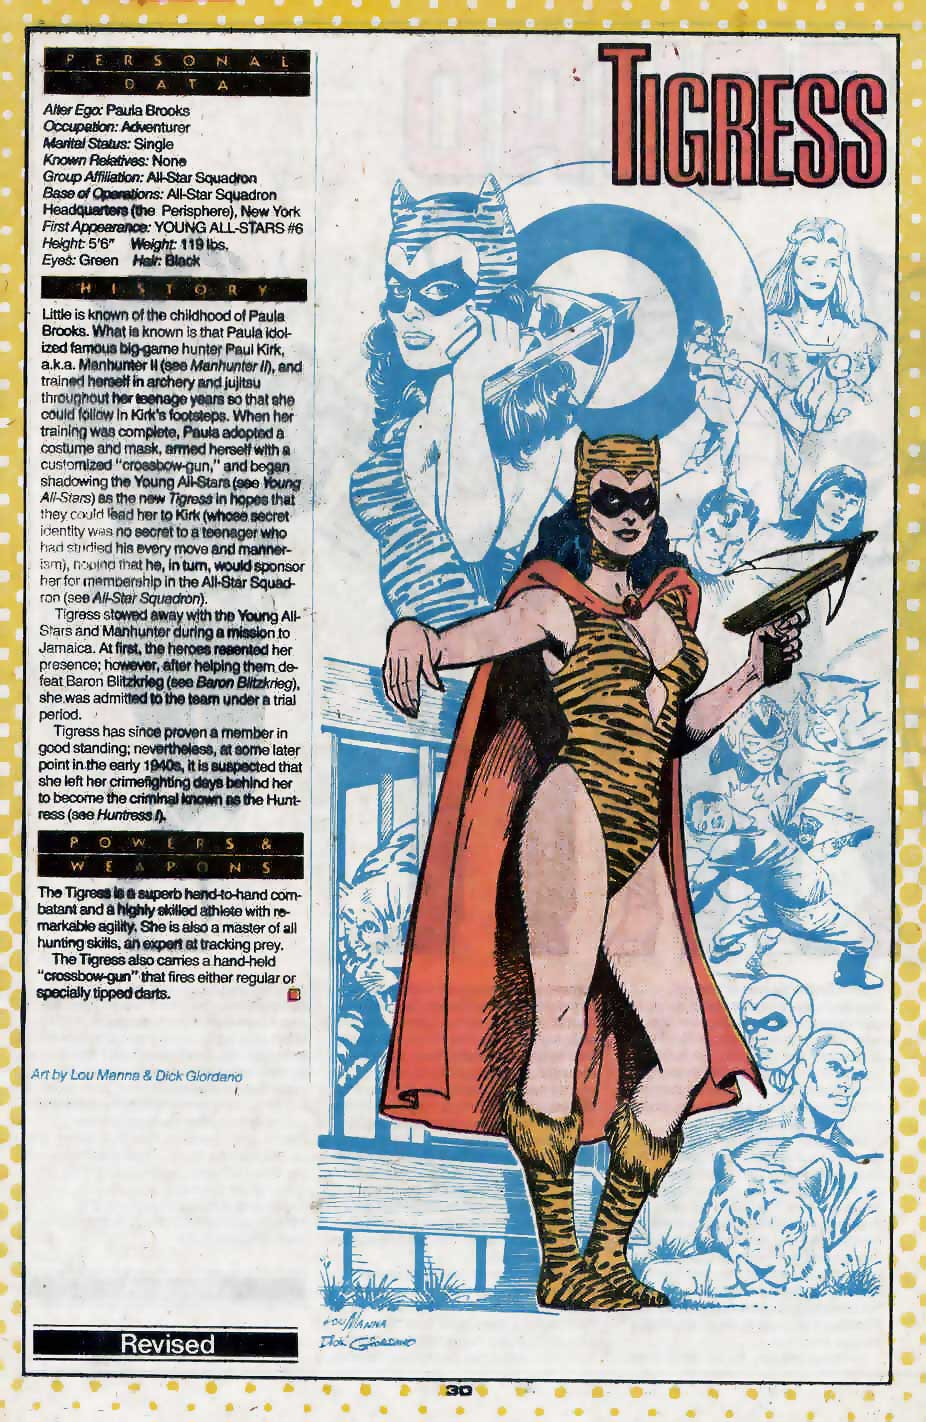 Who's Who Update 88 #3 Tigress by Lou Manna and Dick Giordano